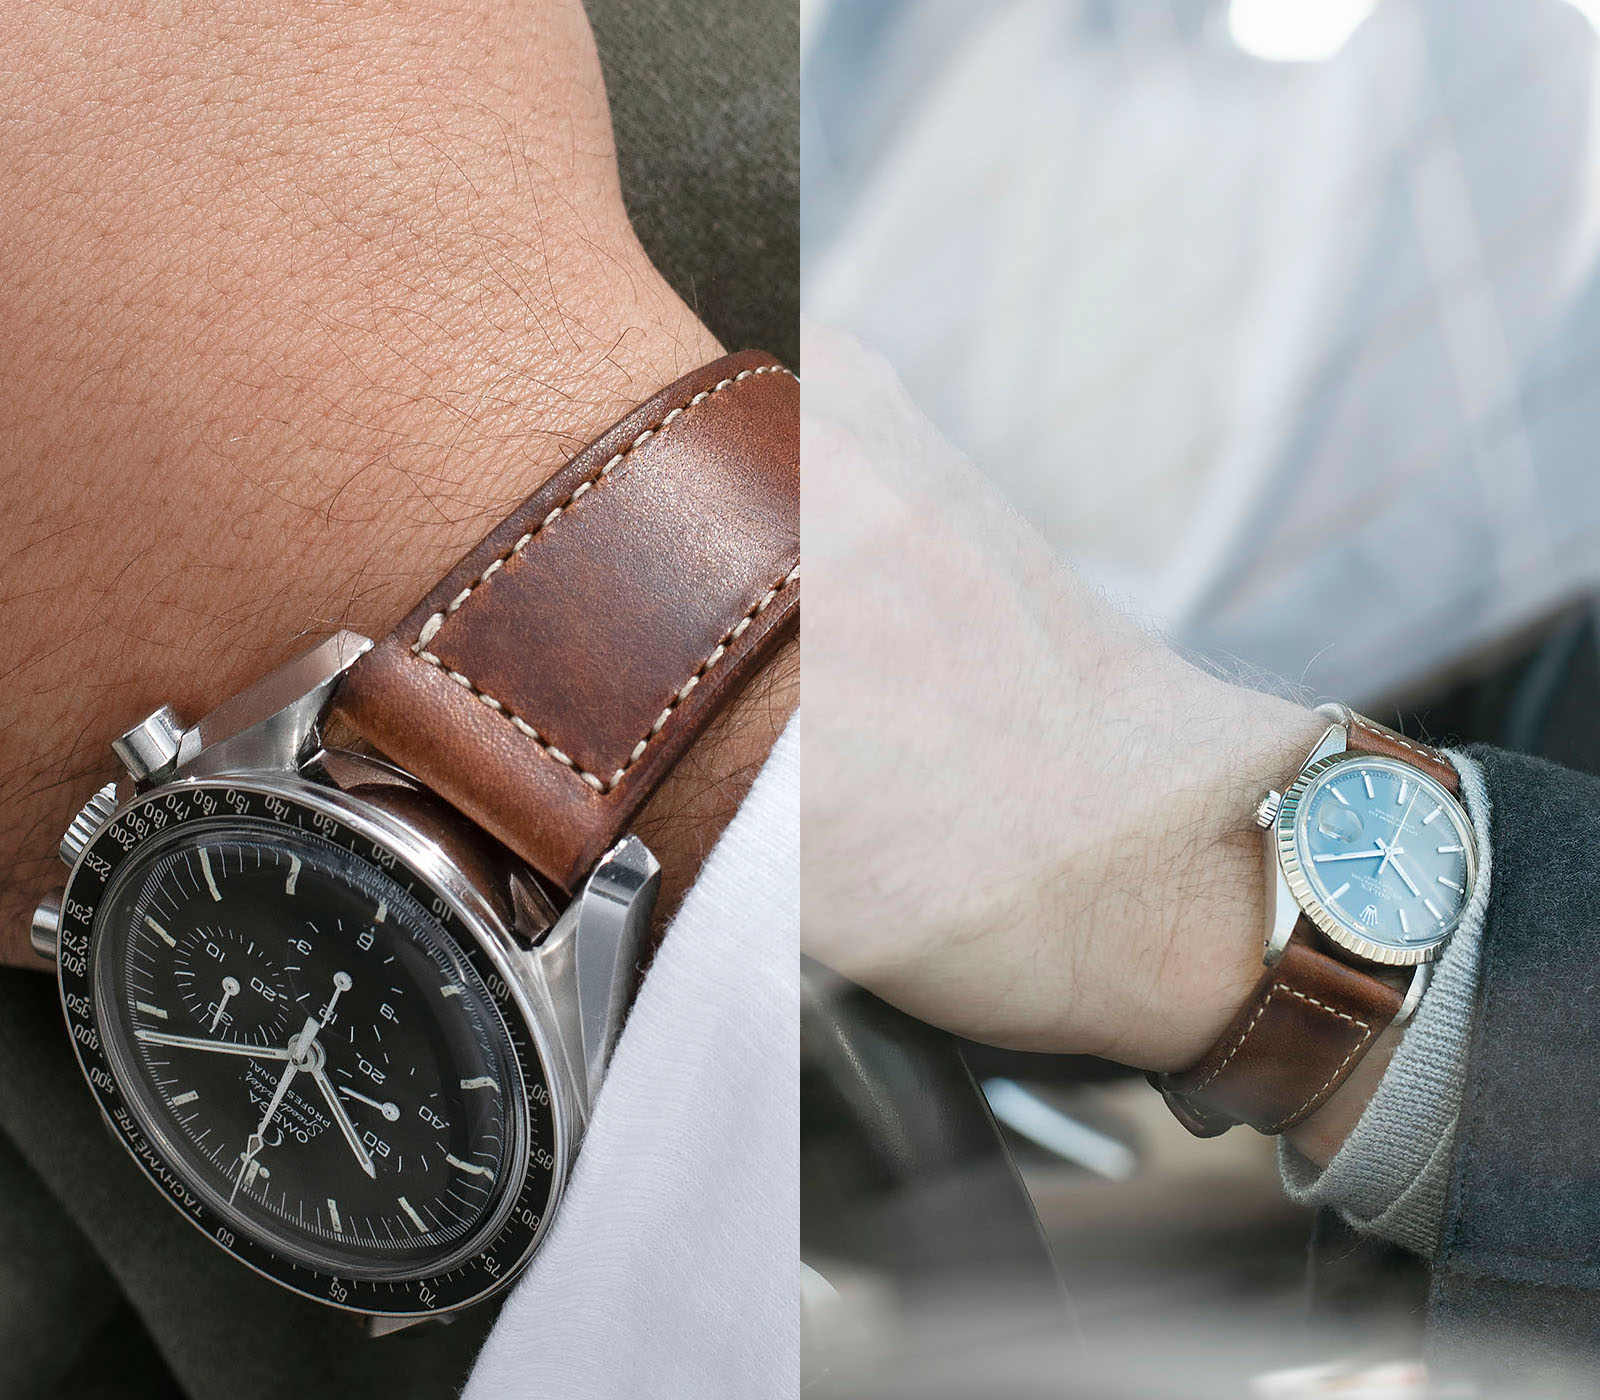 The 9 TO 5 Collection - Authentic Style for your Business and Life, Omega Speedmaster on a Bulang and Sons Leather Watch Strap